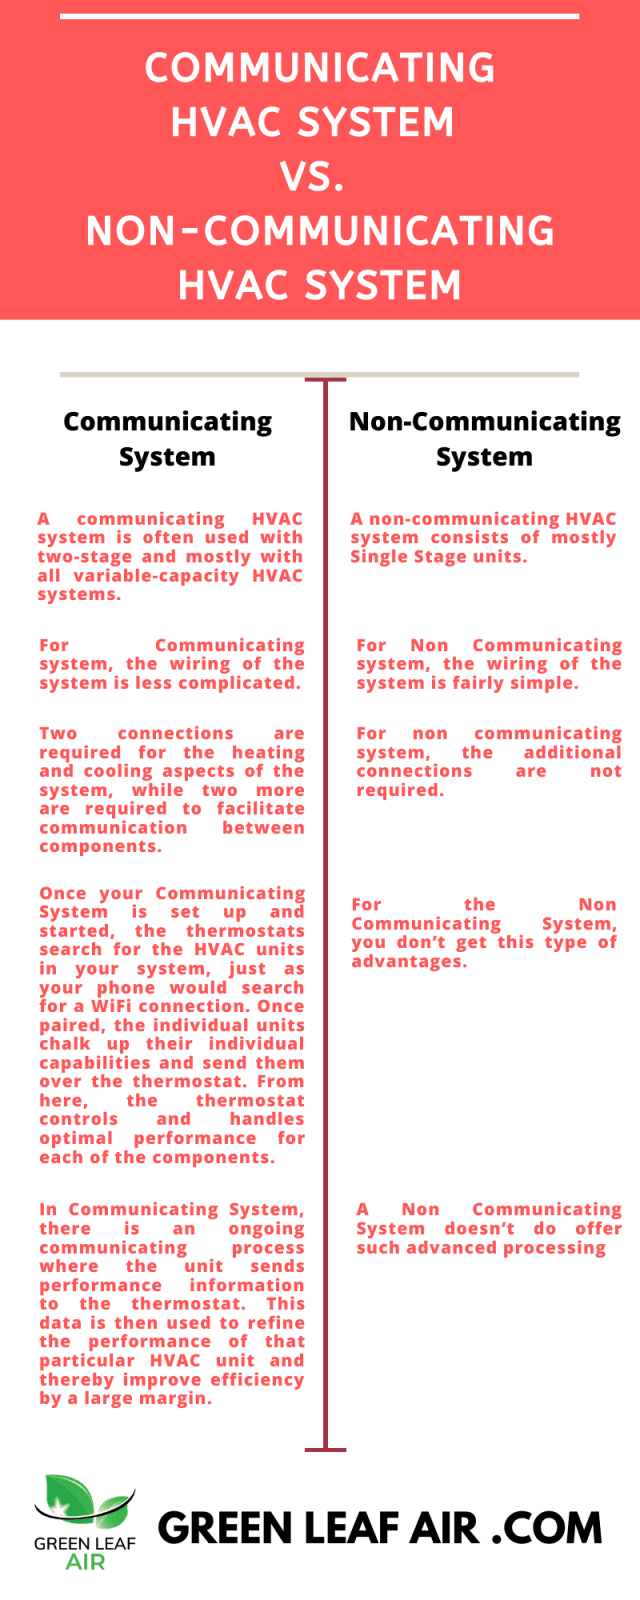 Communicating HVAC System vs. Non-Communicating HVAC System